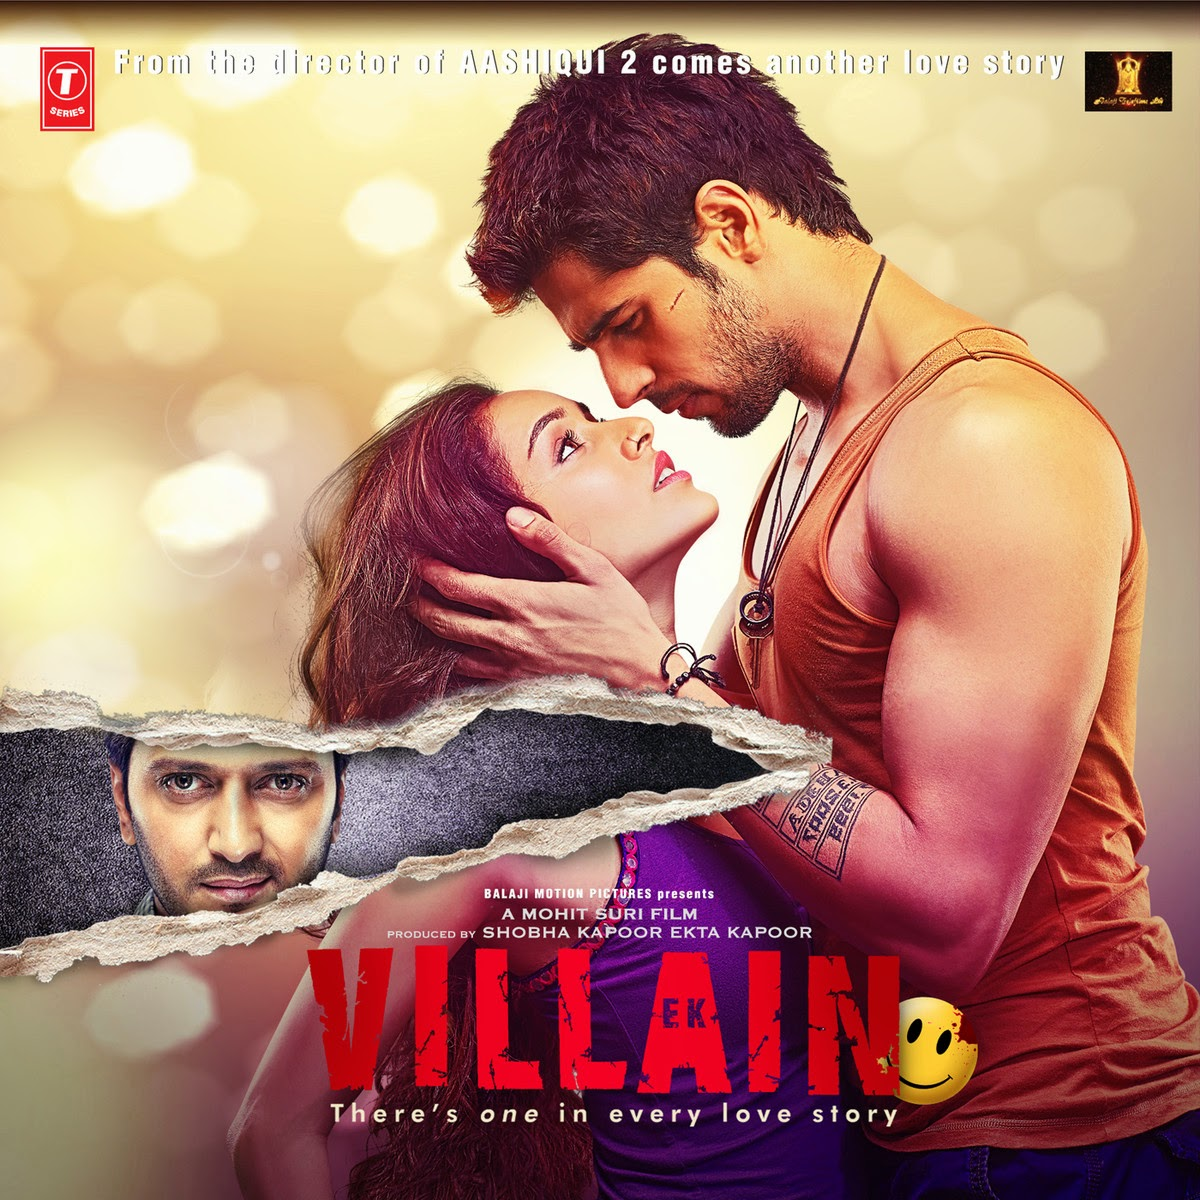 Ek Villain 2014 Hindi Movie Watch Online